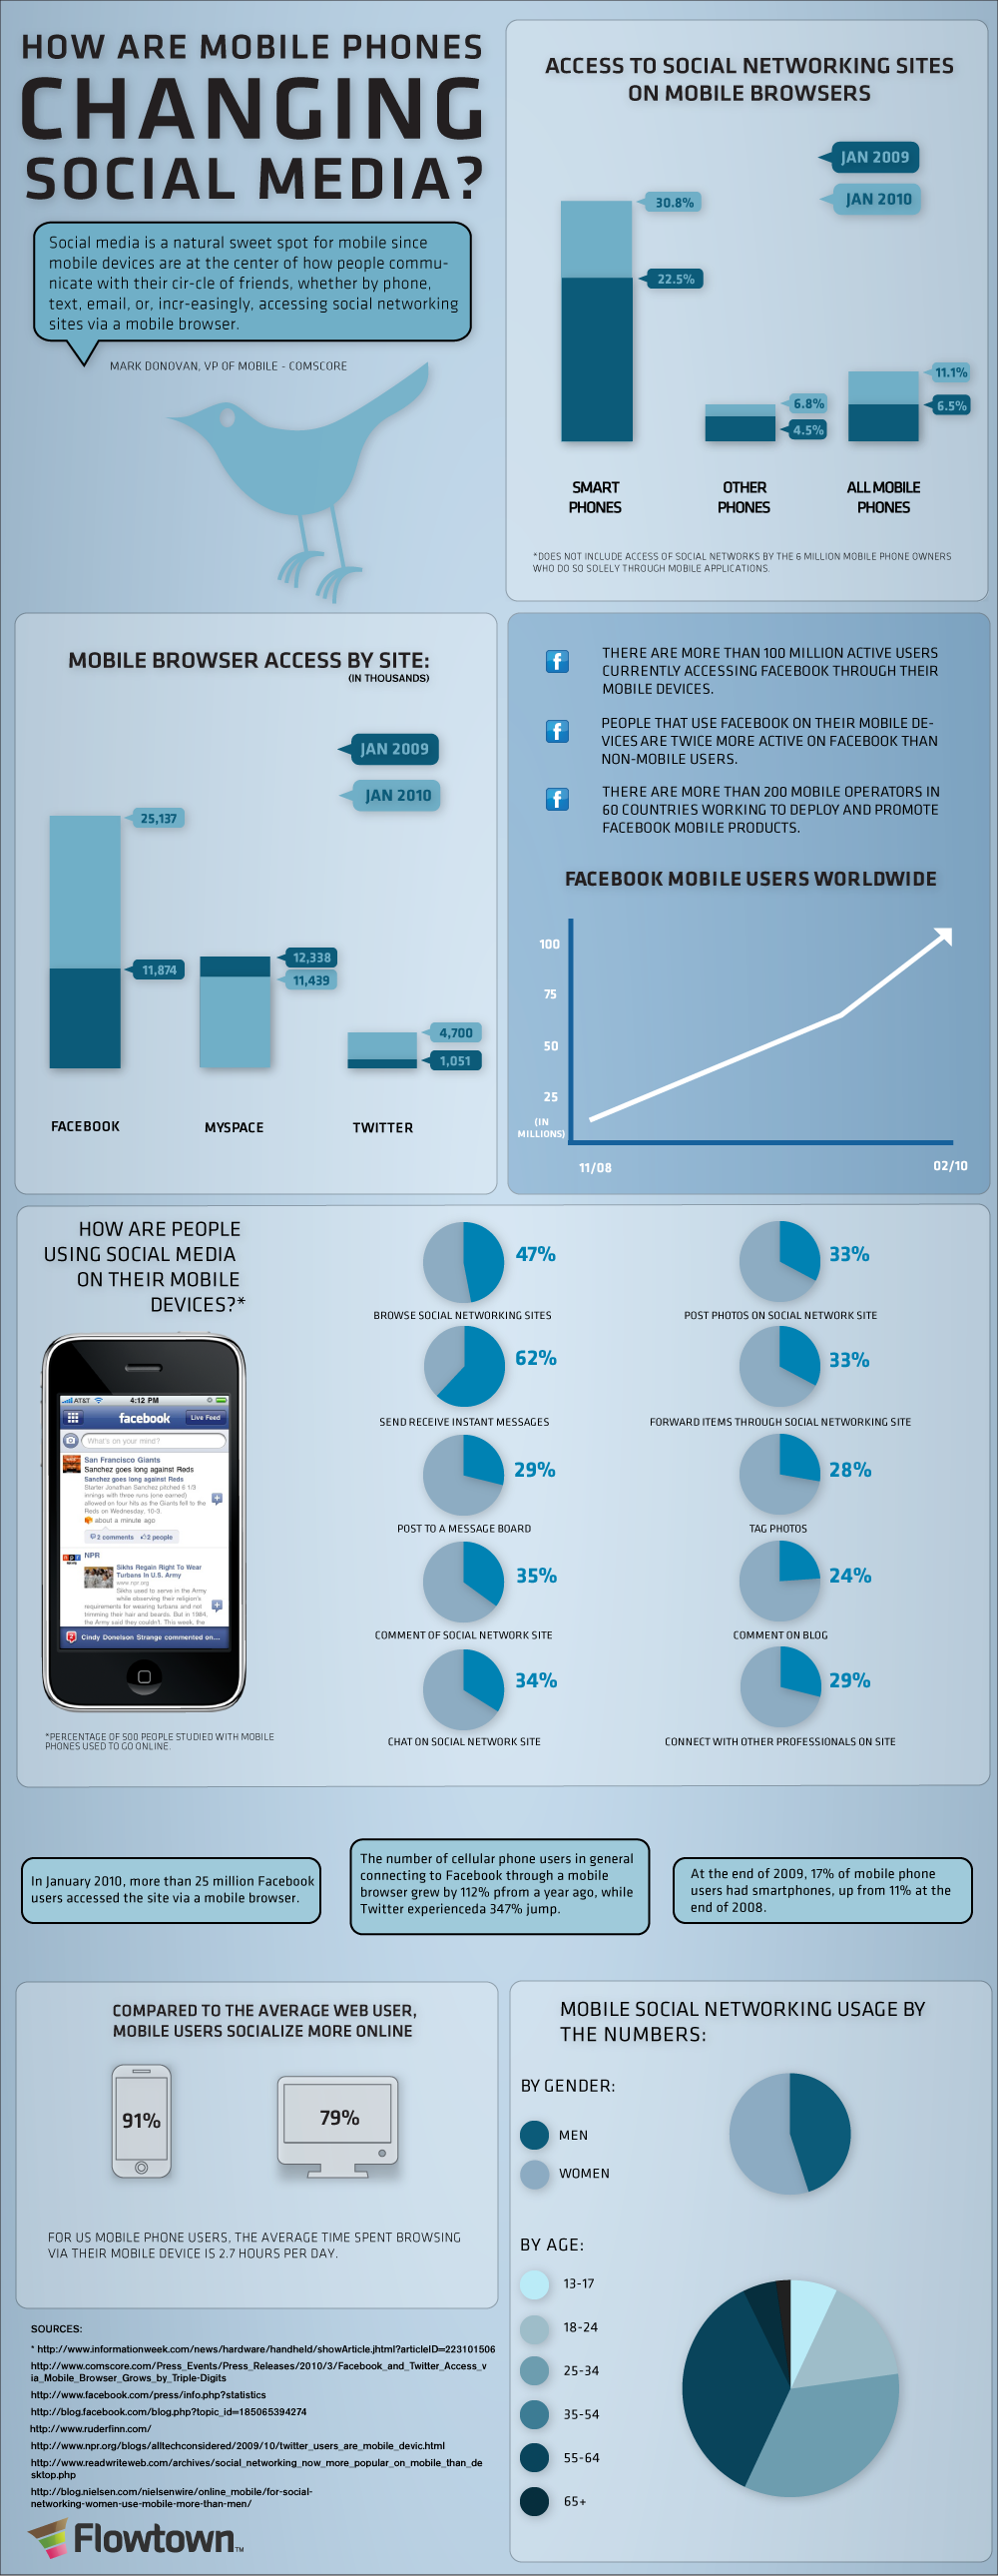 Mobile phones are changing social media